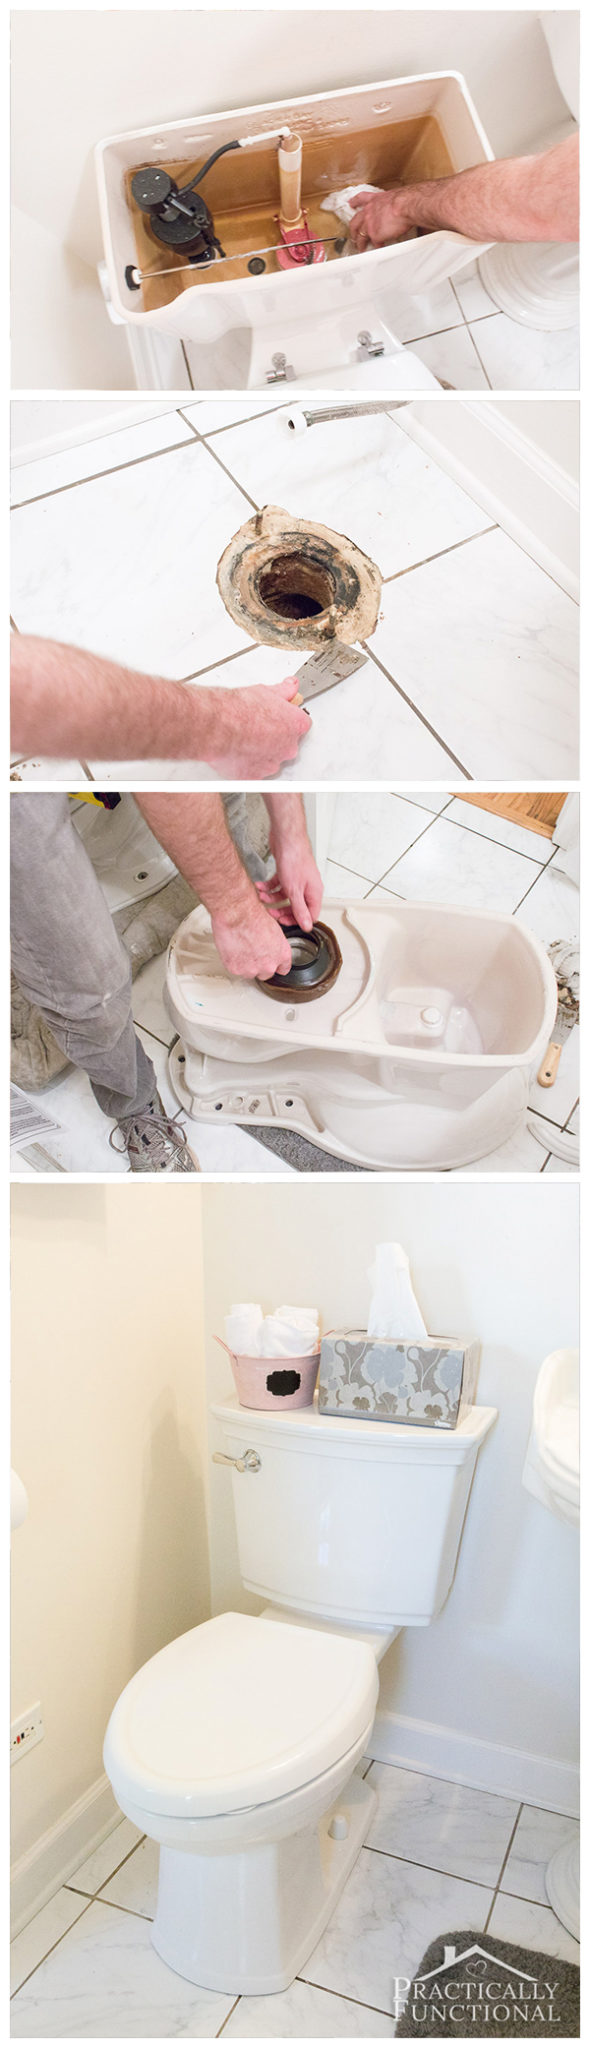 Learn how to install a toilet yourself, and save a call to the plumber!